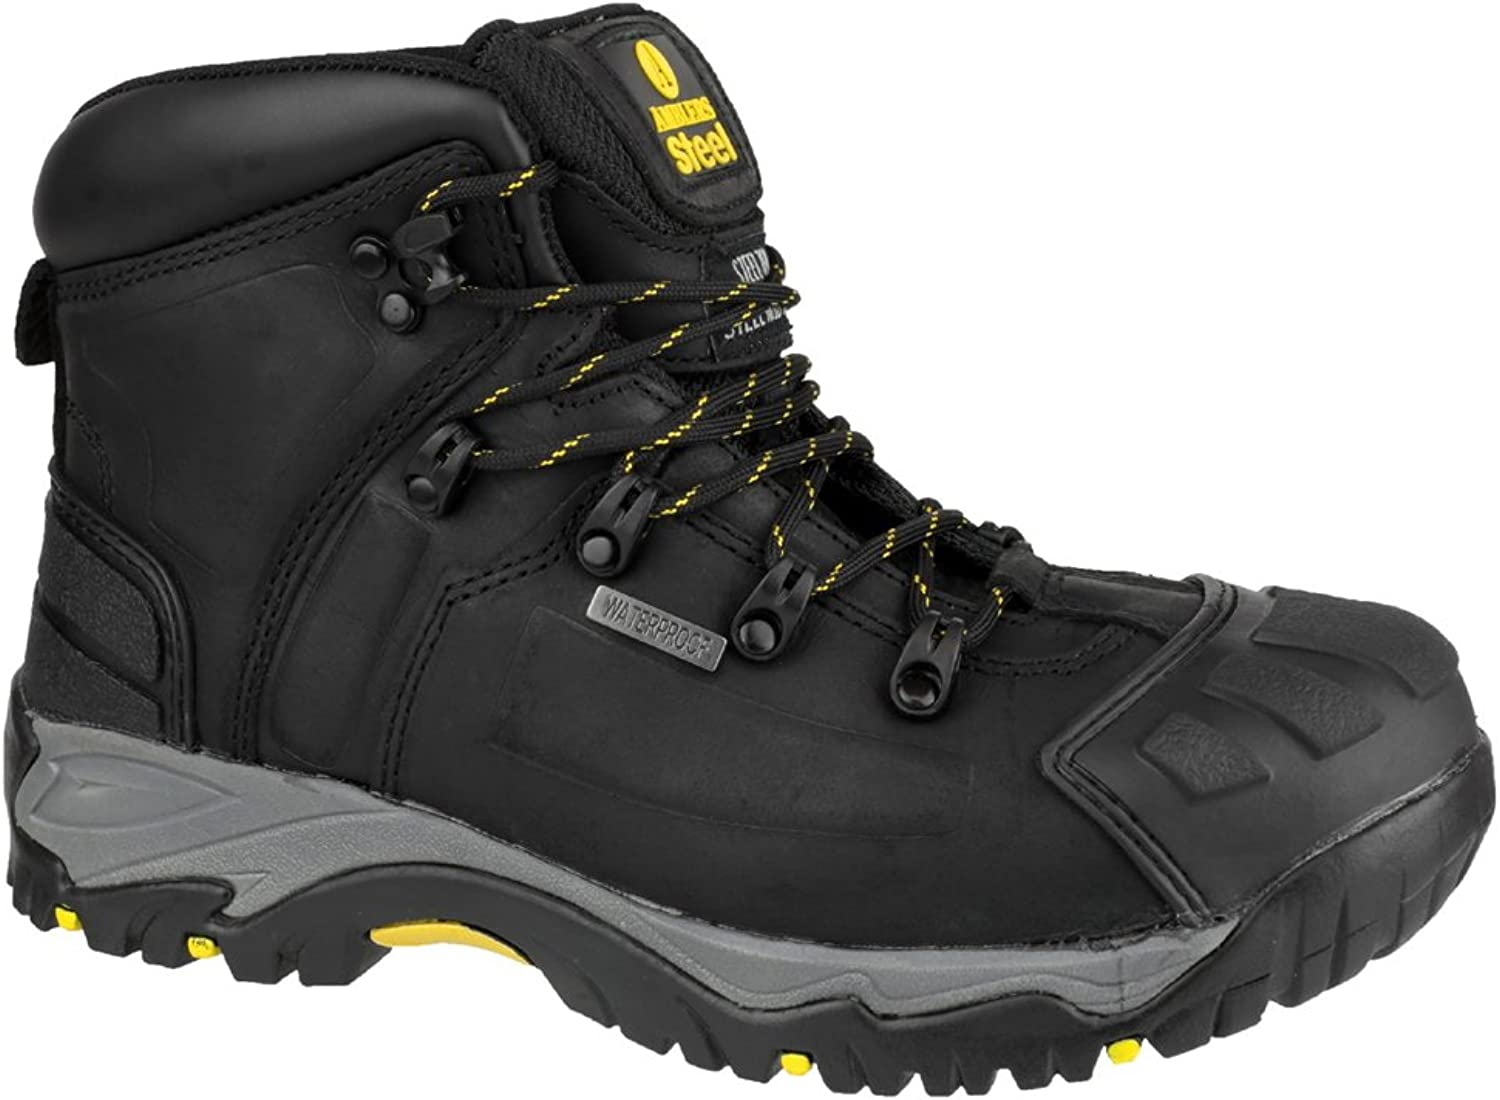 Mens Amblers Black Grey Leather Waterproof Safety Toe Cap Work Boots Sizes 7 8 9 10 11 12 13 14 15